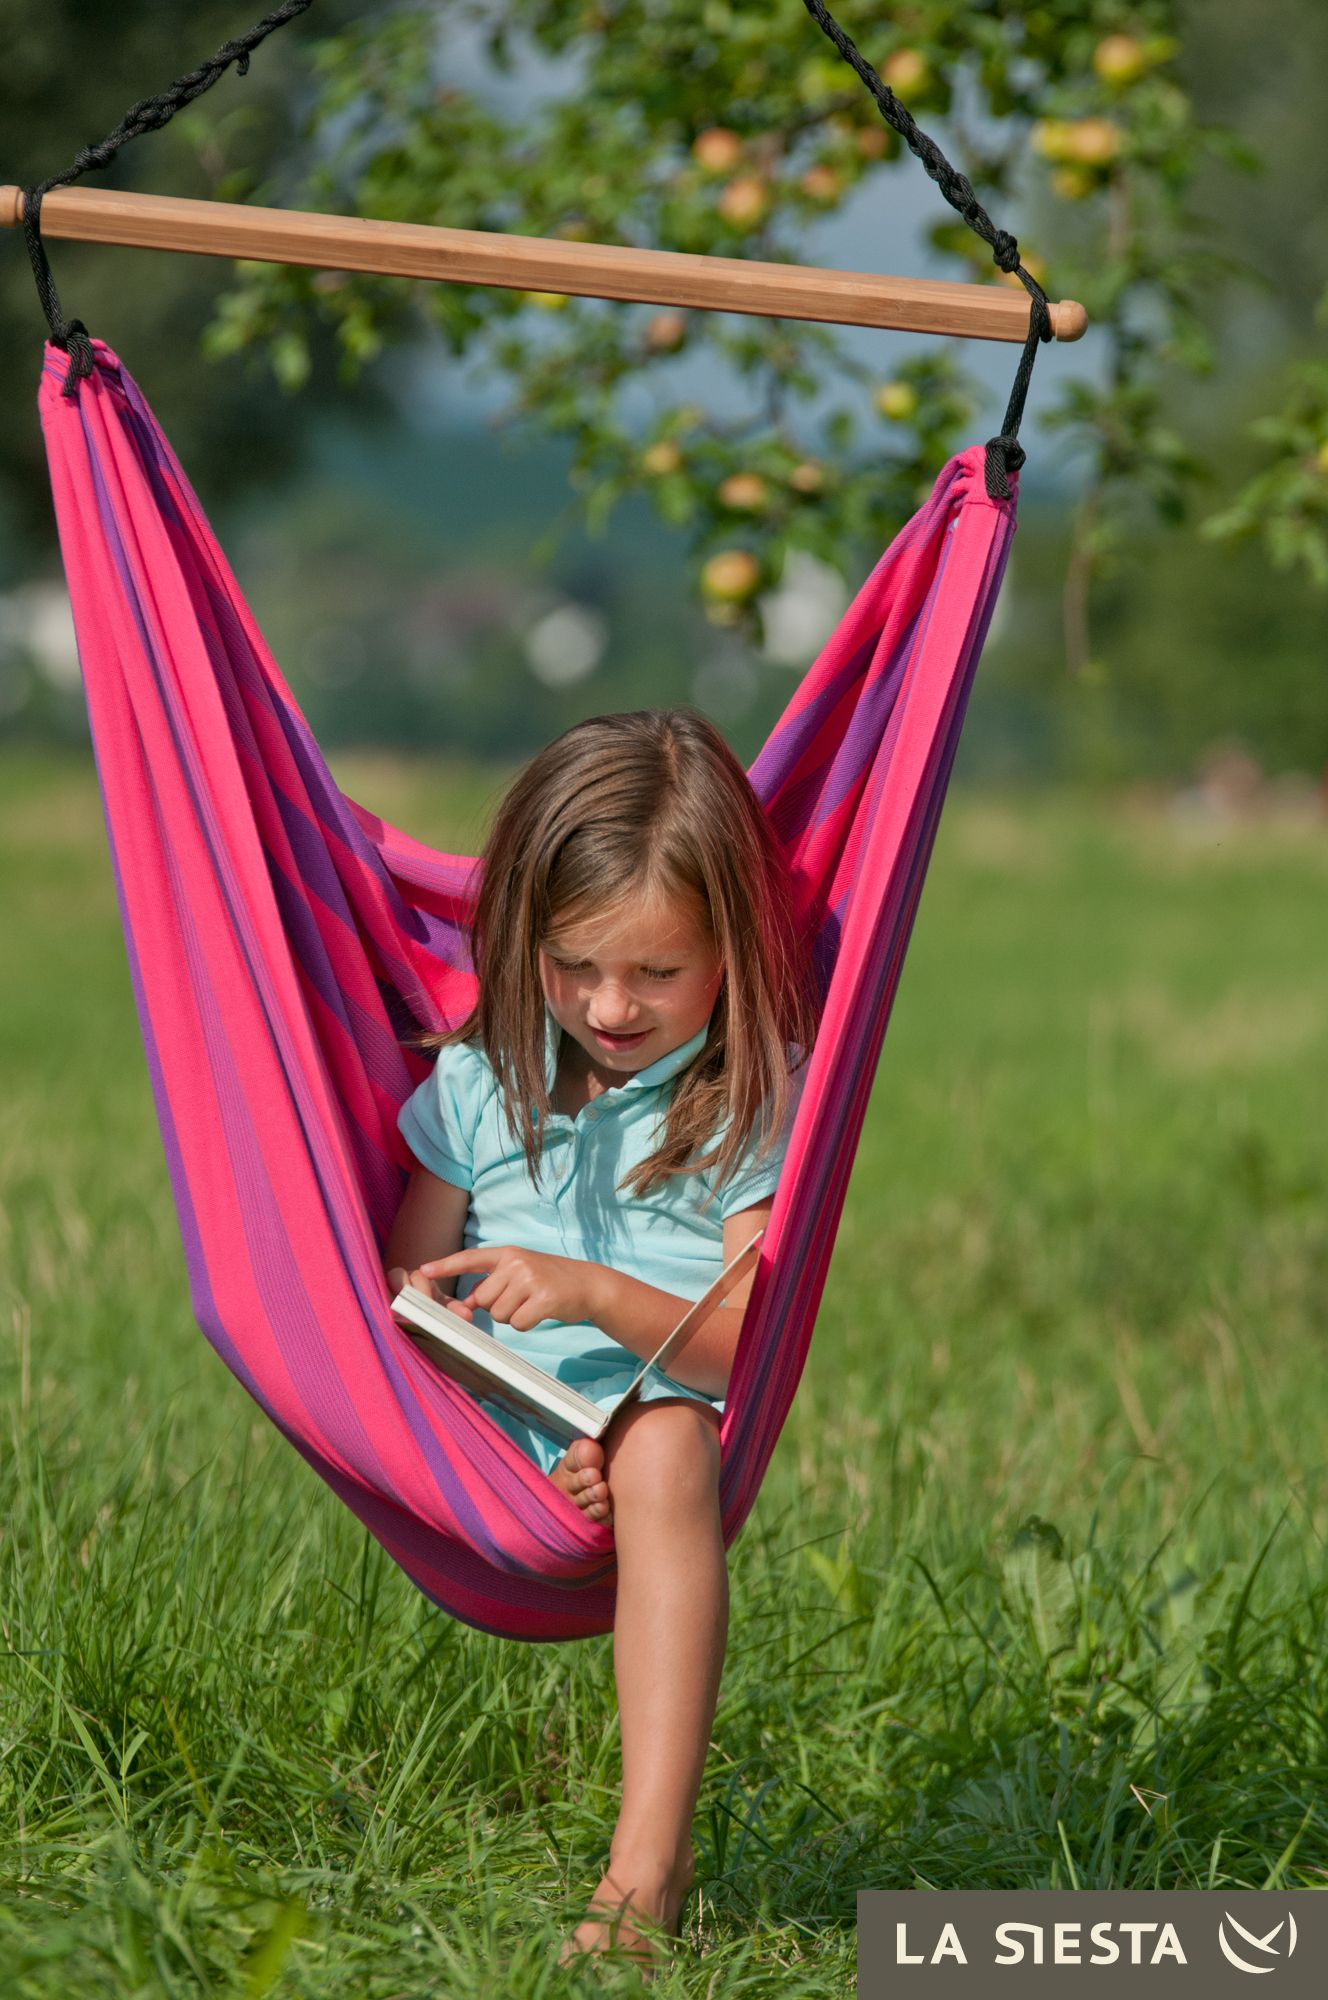 the lori hammock chair is a hanging chair that provides tactile and sensory input for children who need to swing or want a calming  u0027hug u0027  maybe two of these from the pergola  george karabelas karabelas      rh   pinterest